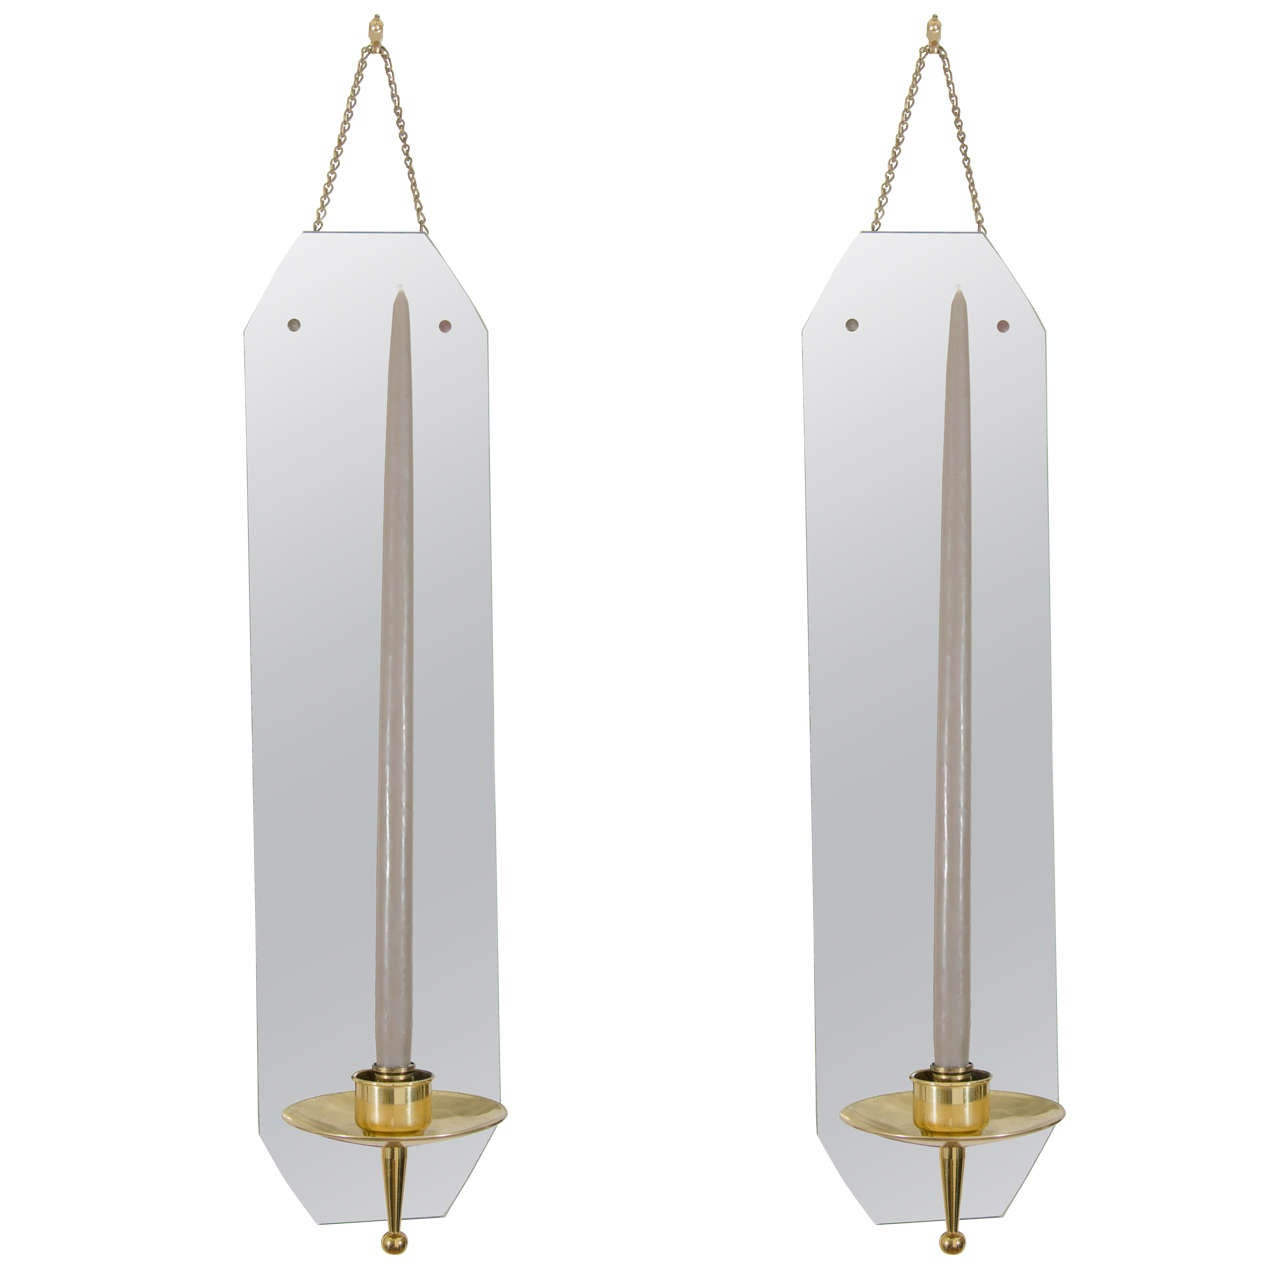 Brass Wall Sconces Candle Holders : Tommi Parzinger Style Mirror and Brass Wall Candle Sconces at 1stdibs